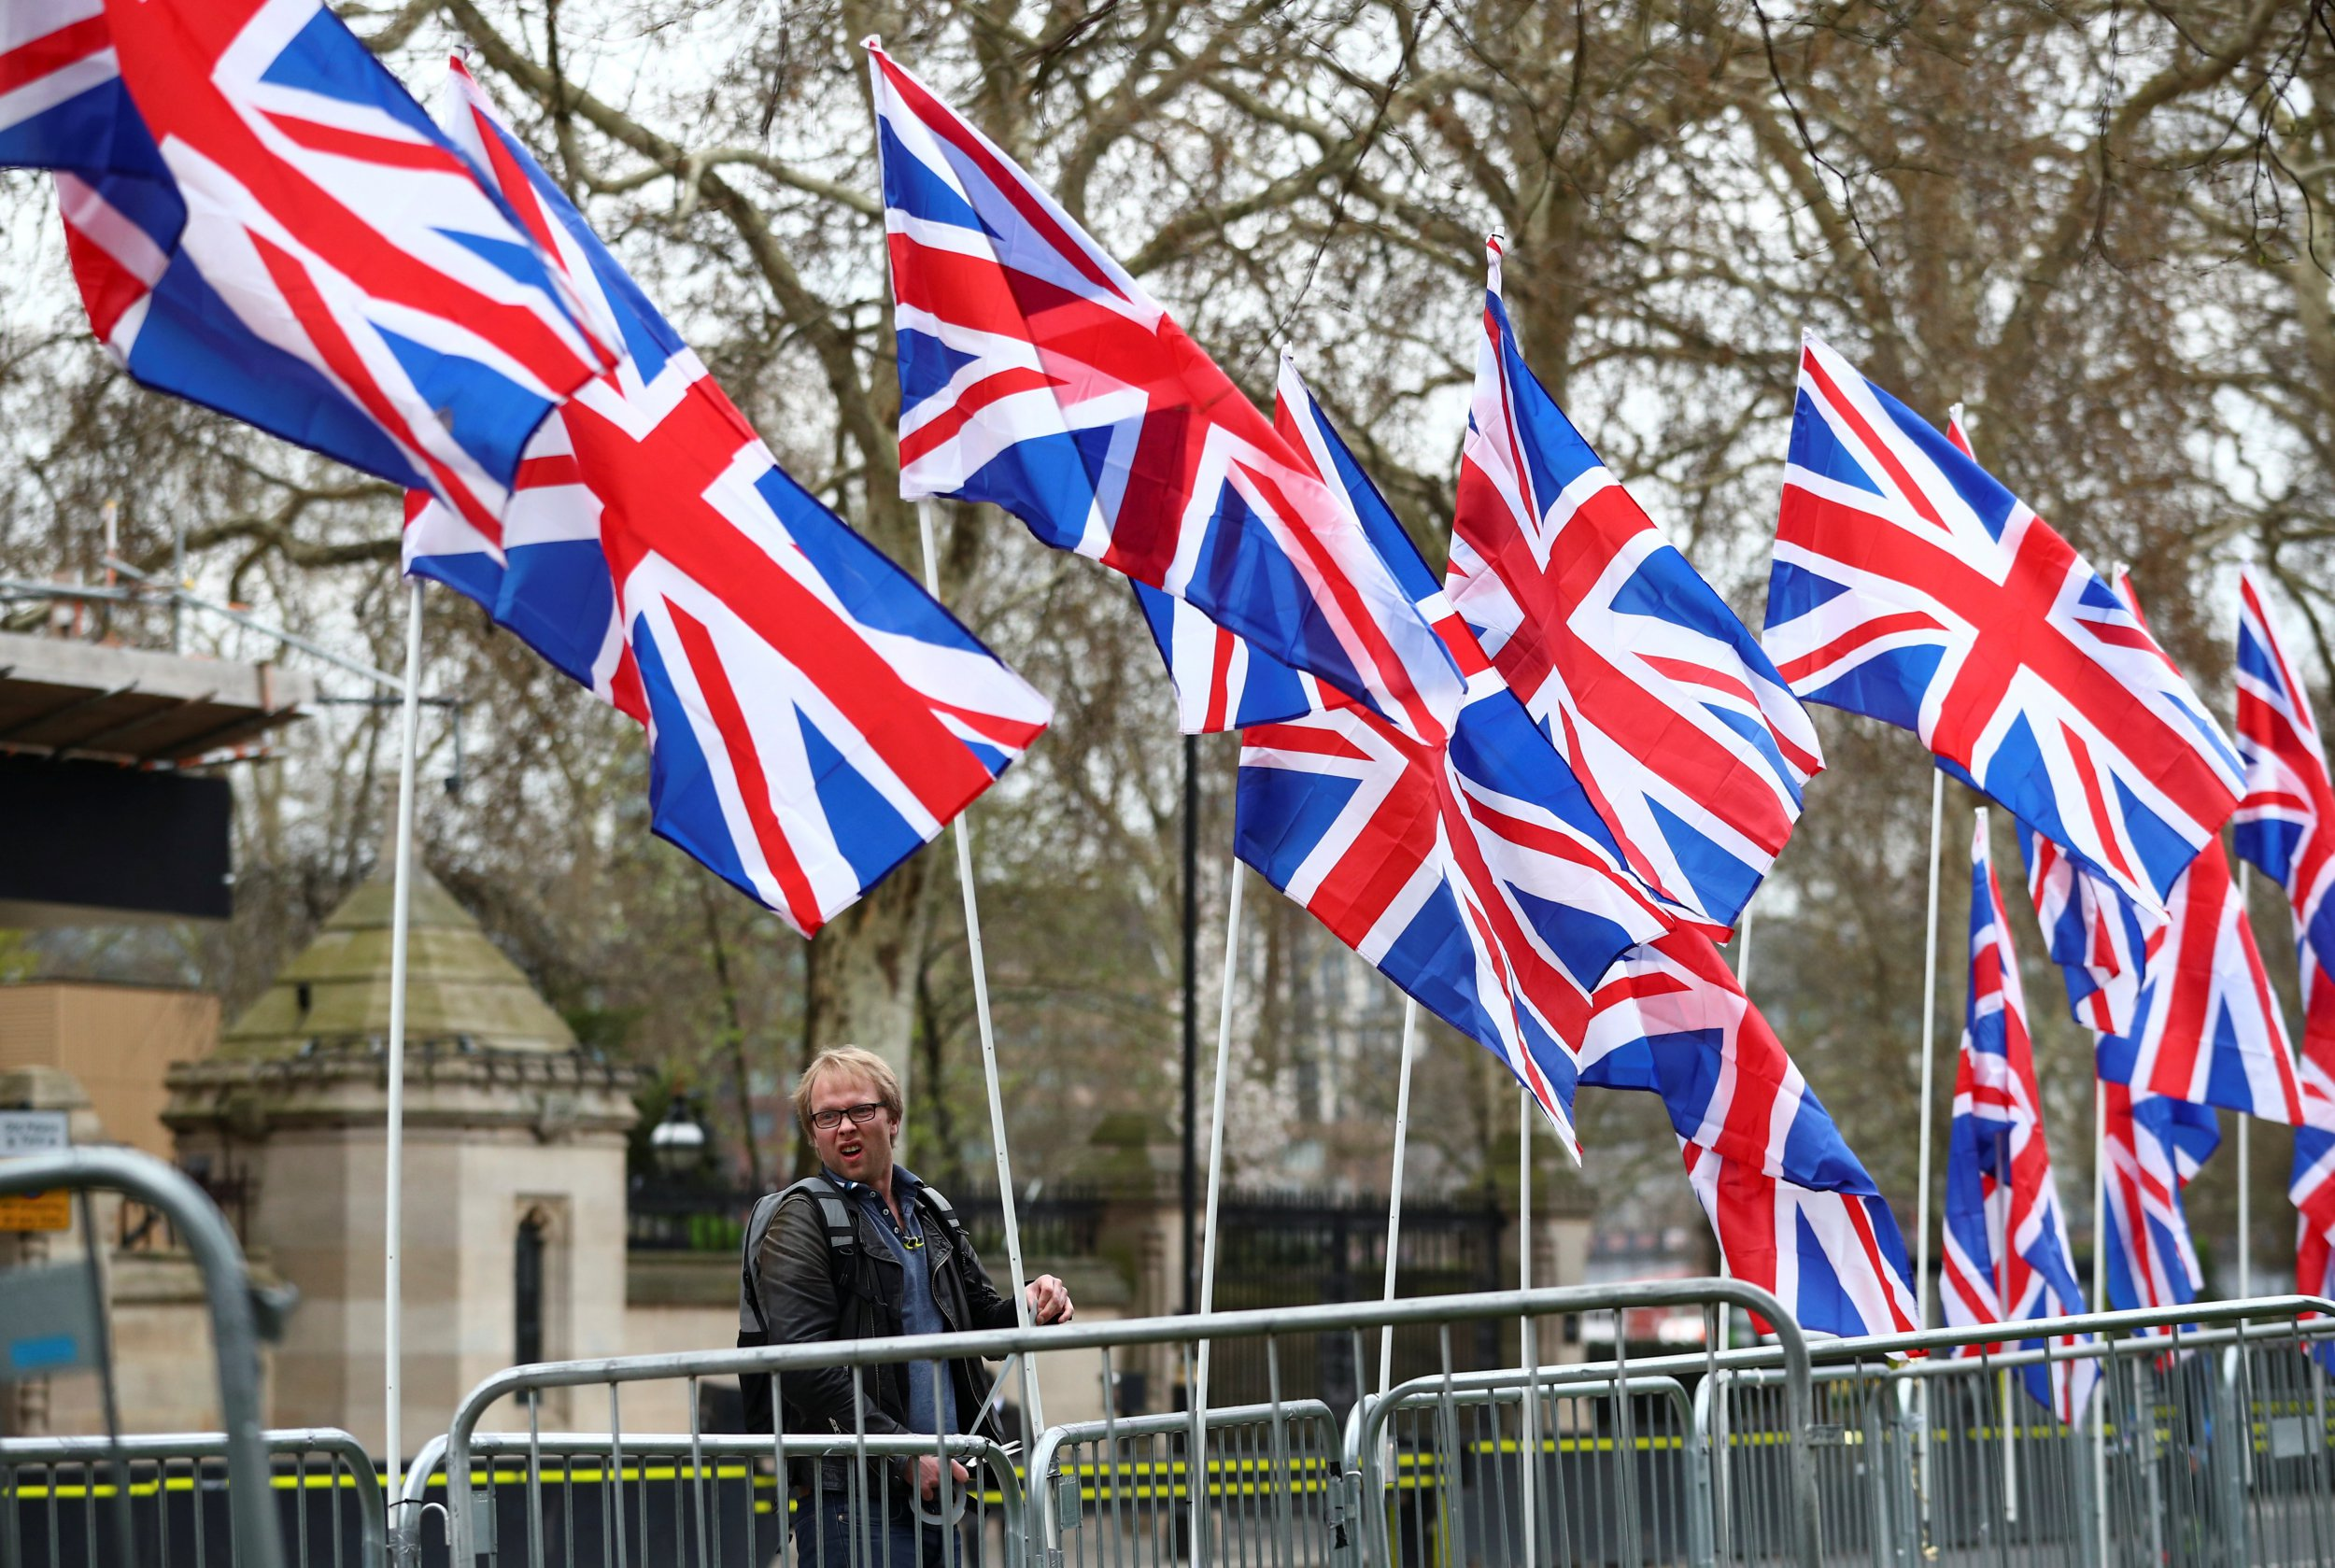 Brexit supporters got up at 6am to replace EU flags with 34 Union flags